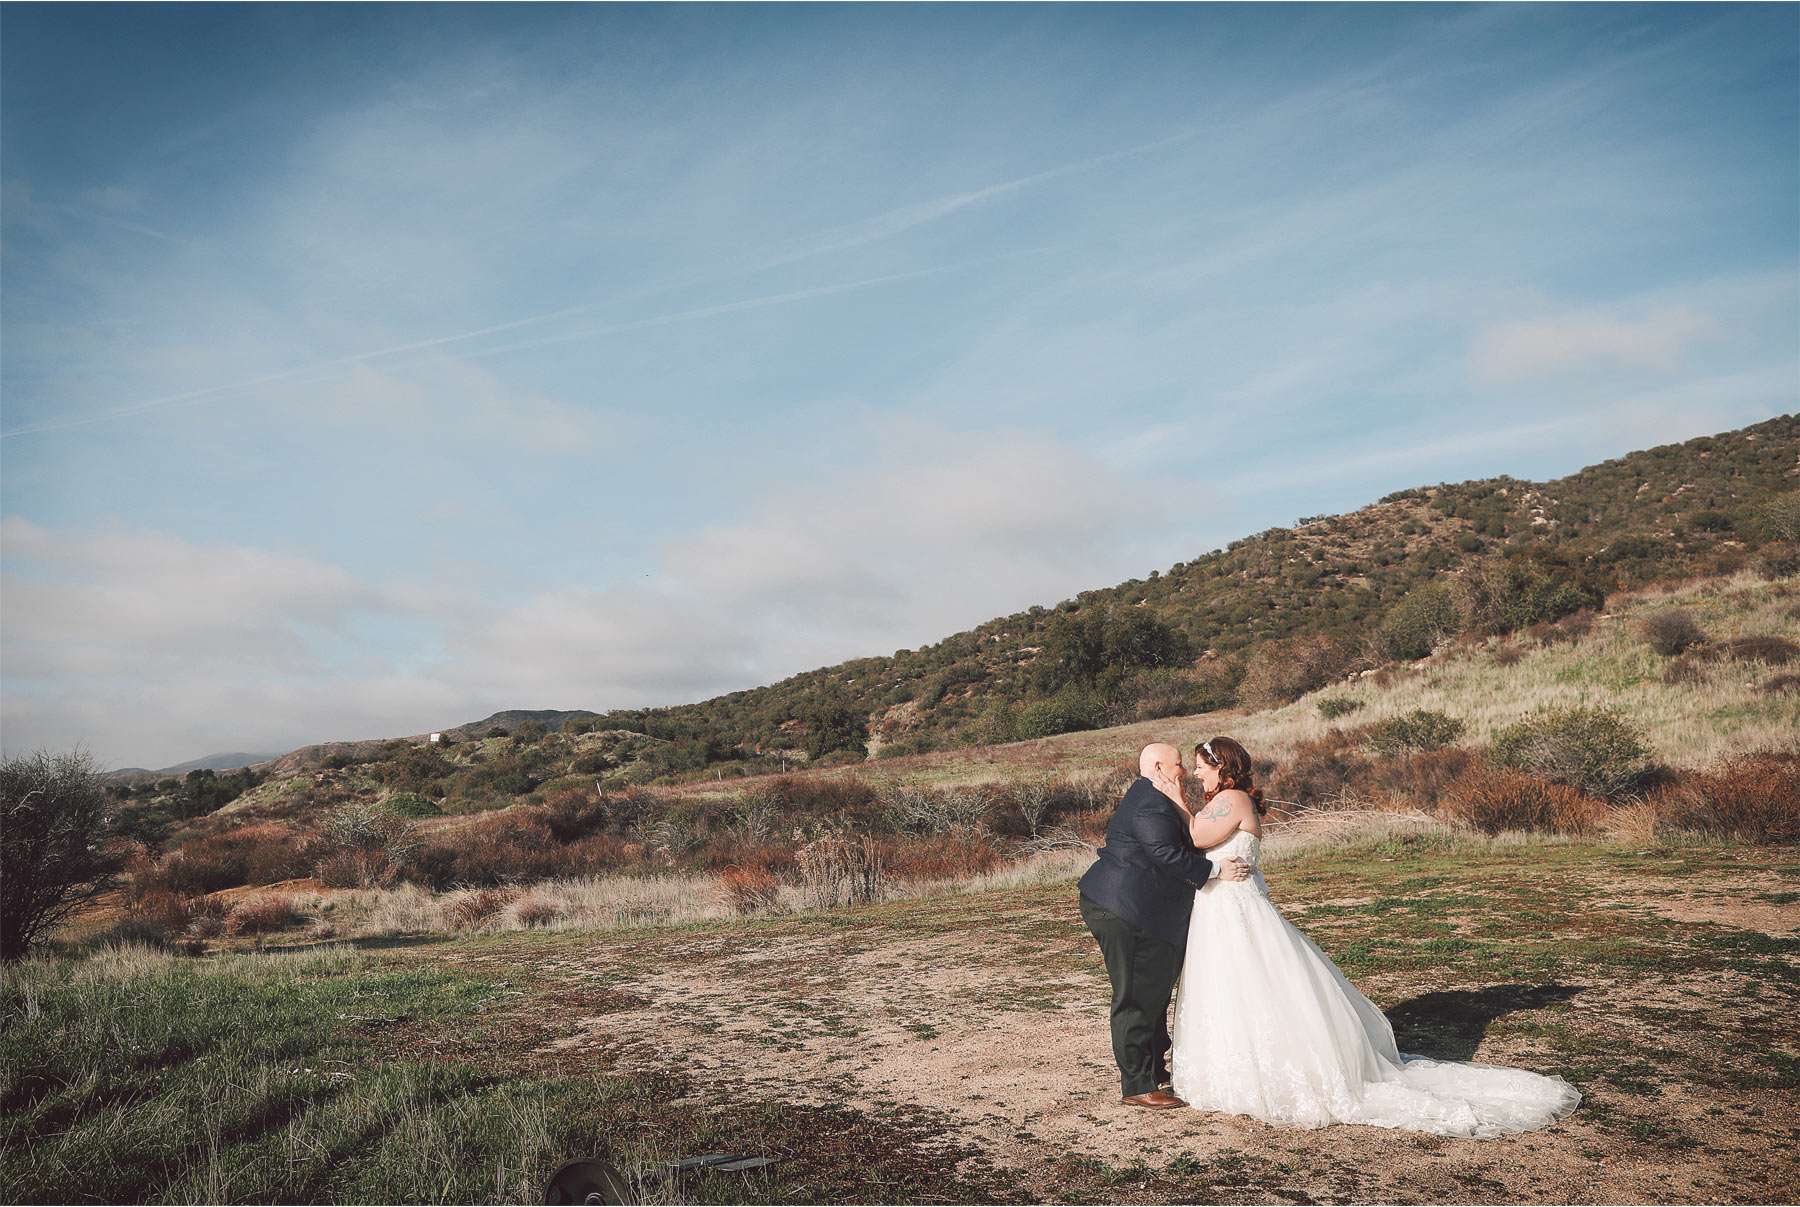 08-Los-Angeles-California-Wedding-Photographer-by-Vick-Photography-Highland-Springs-Ranch-LGBT-Bride-First-Look-Hills-Rebecca-and-Terri.jpg